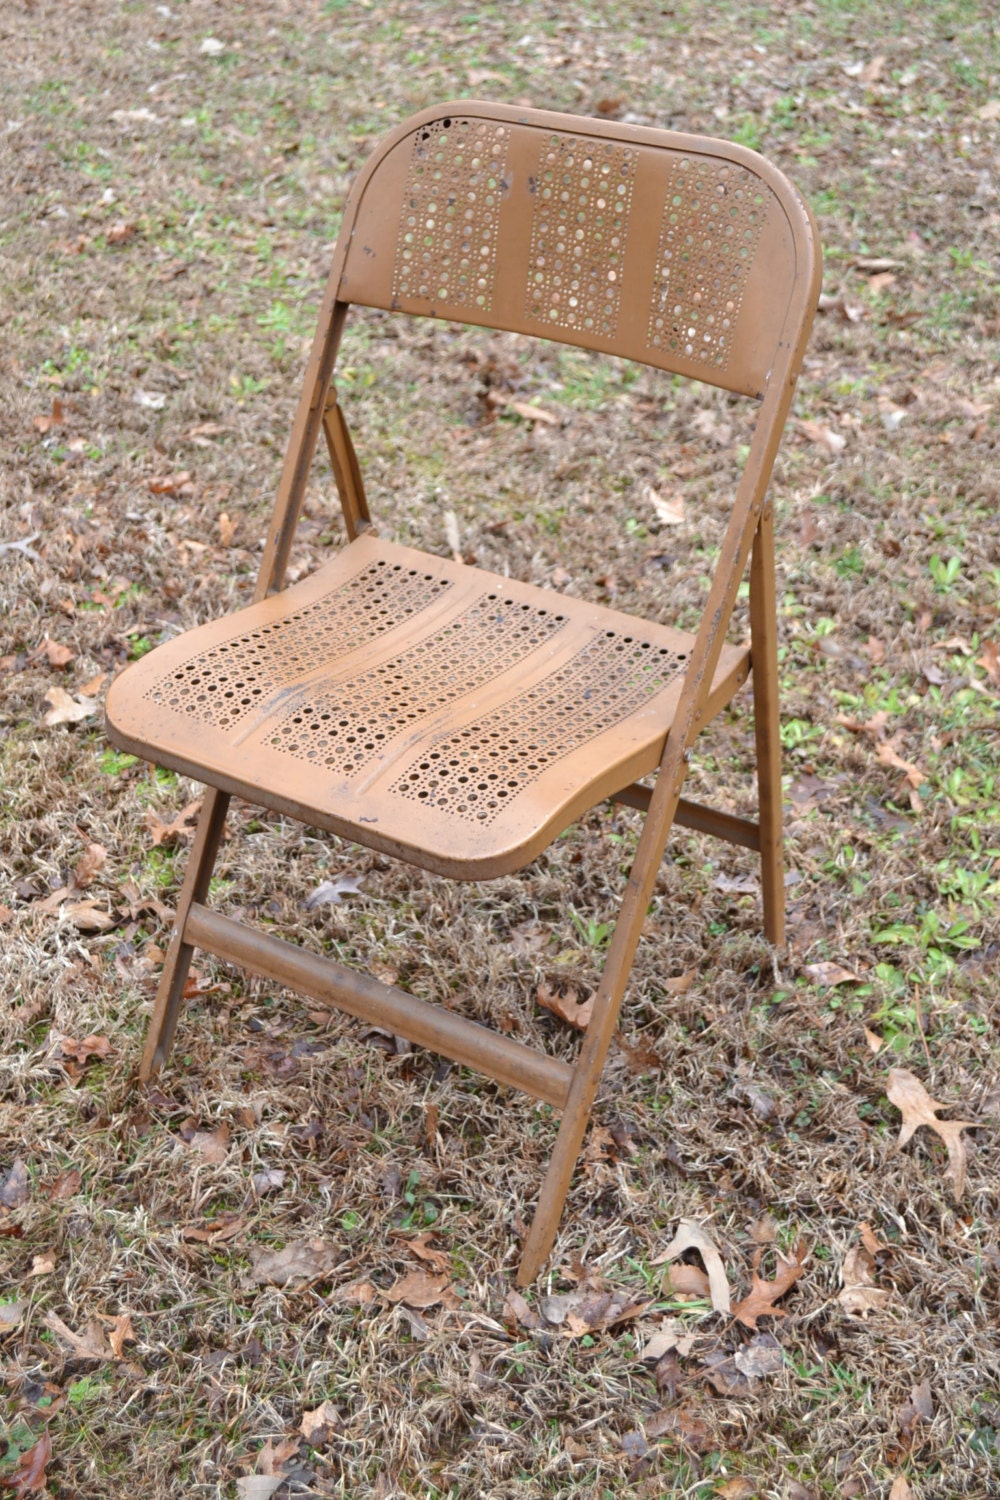 Vintage Metal Folding Chair Camping Coleman Beige Perforated